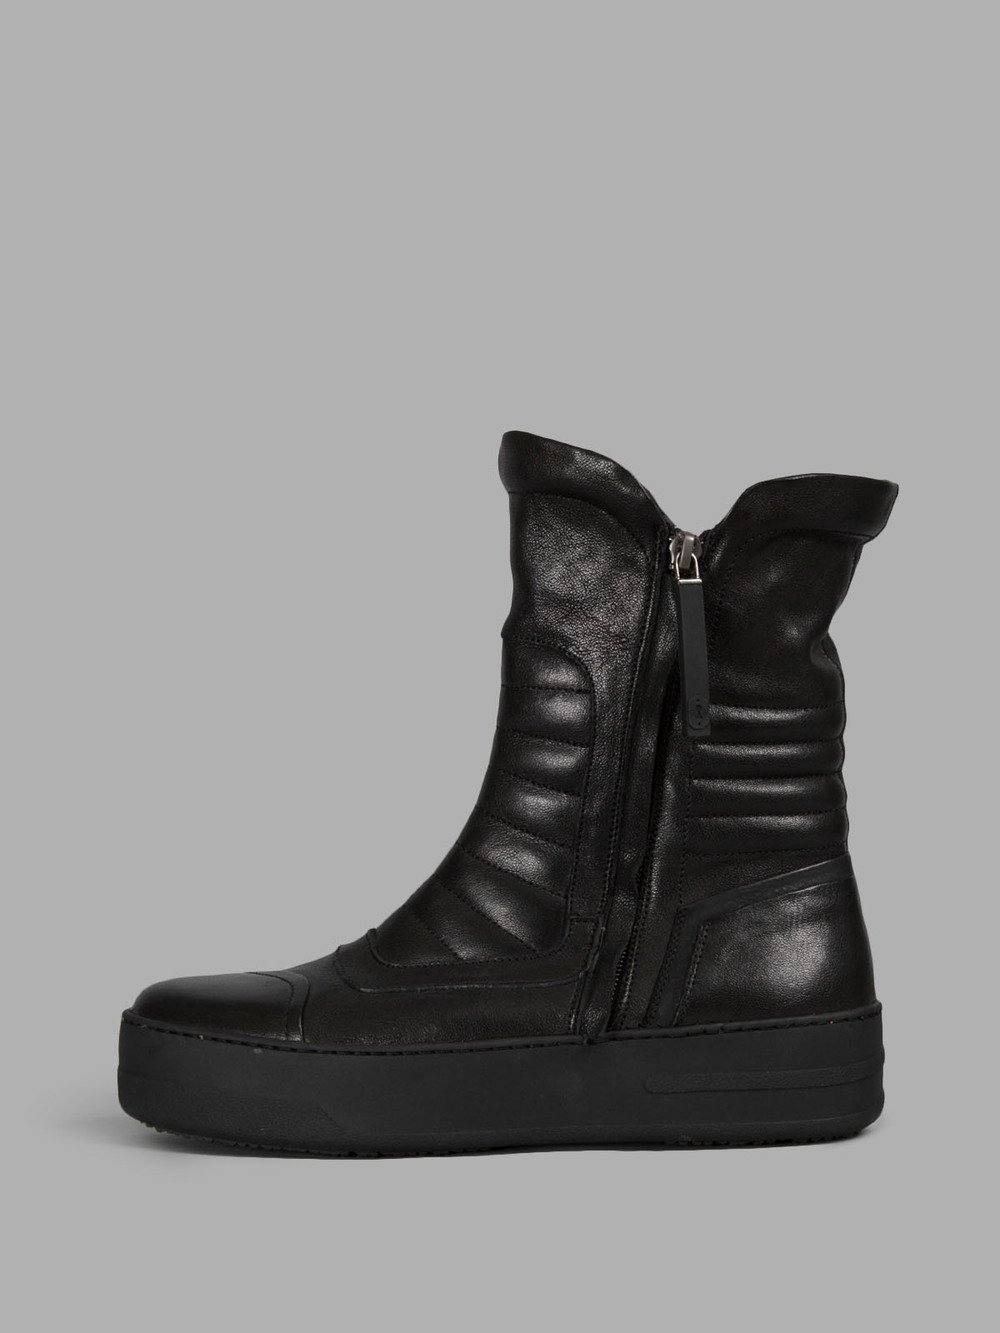 BRUNO BORDESE Sneakers buy cheap footaction for sale free shipping free shipping sale online cheap sale affordable clearance cheap DnwGqmt3u